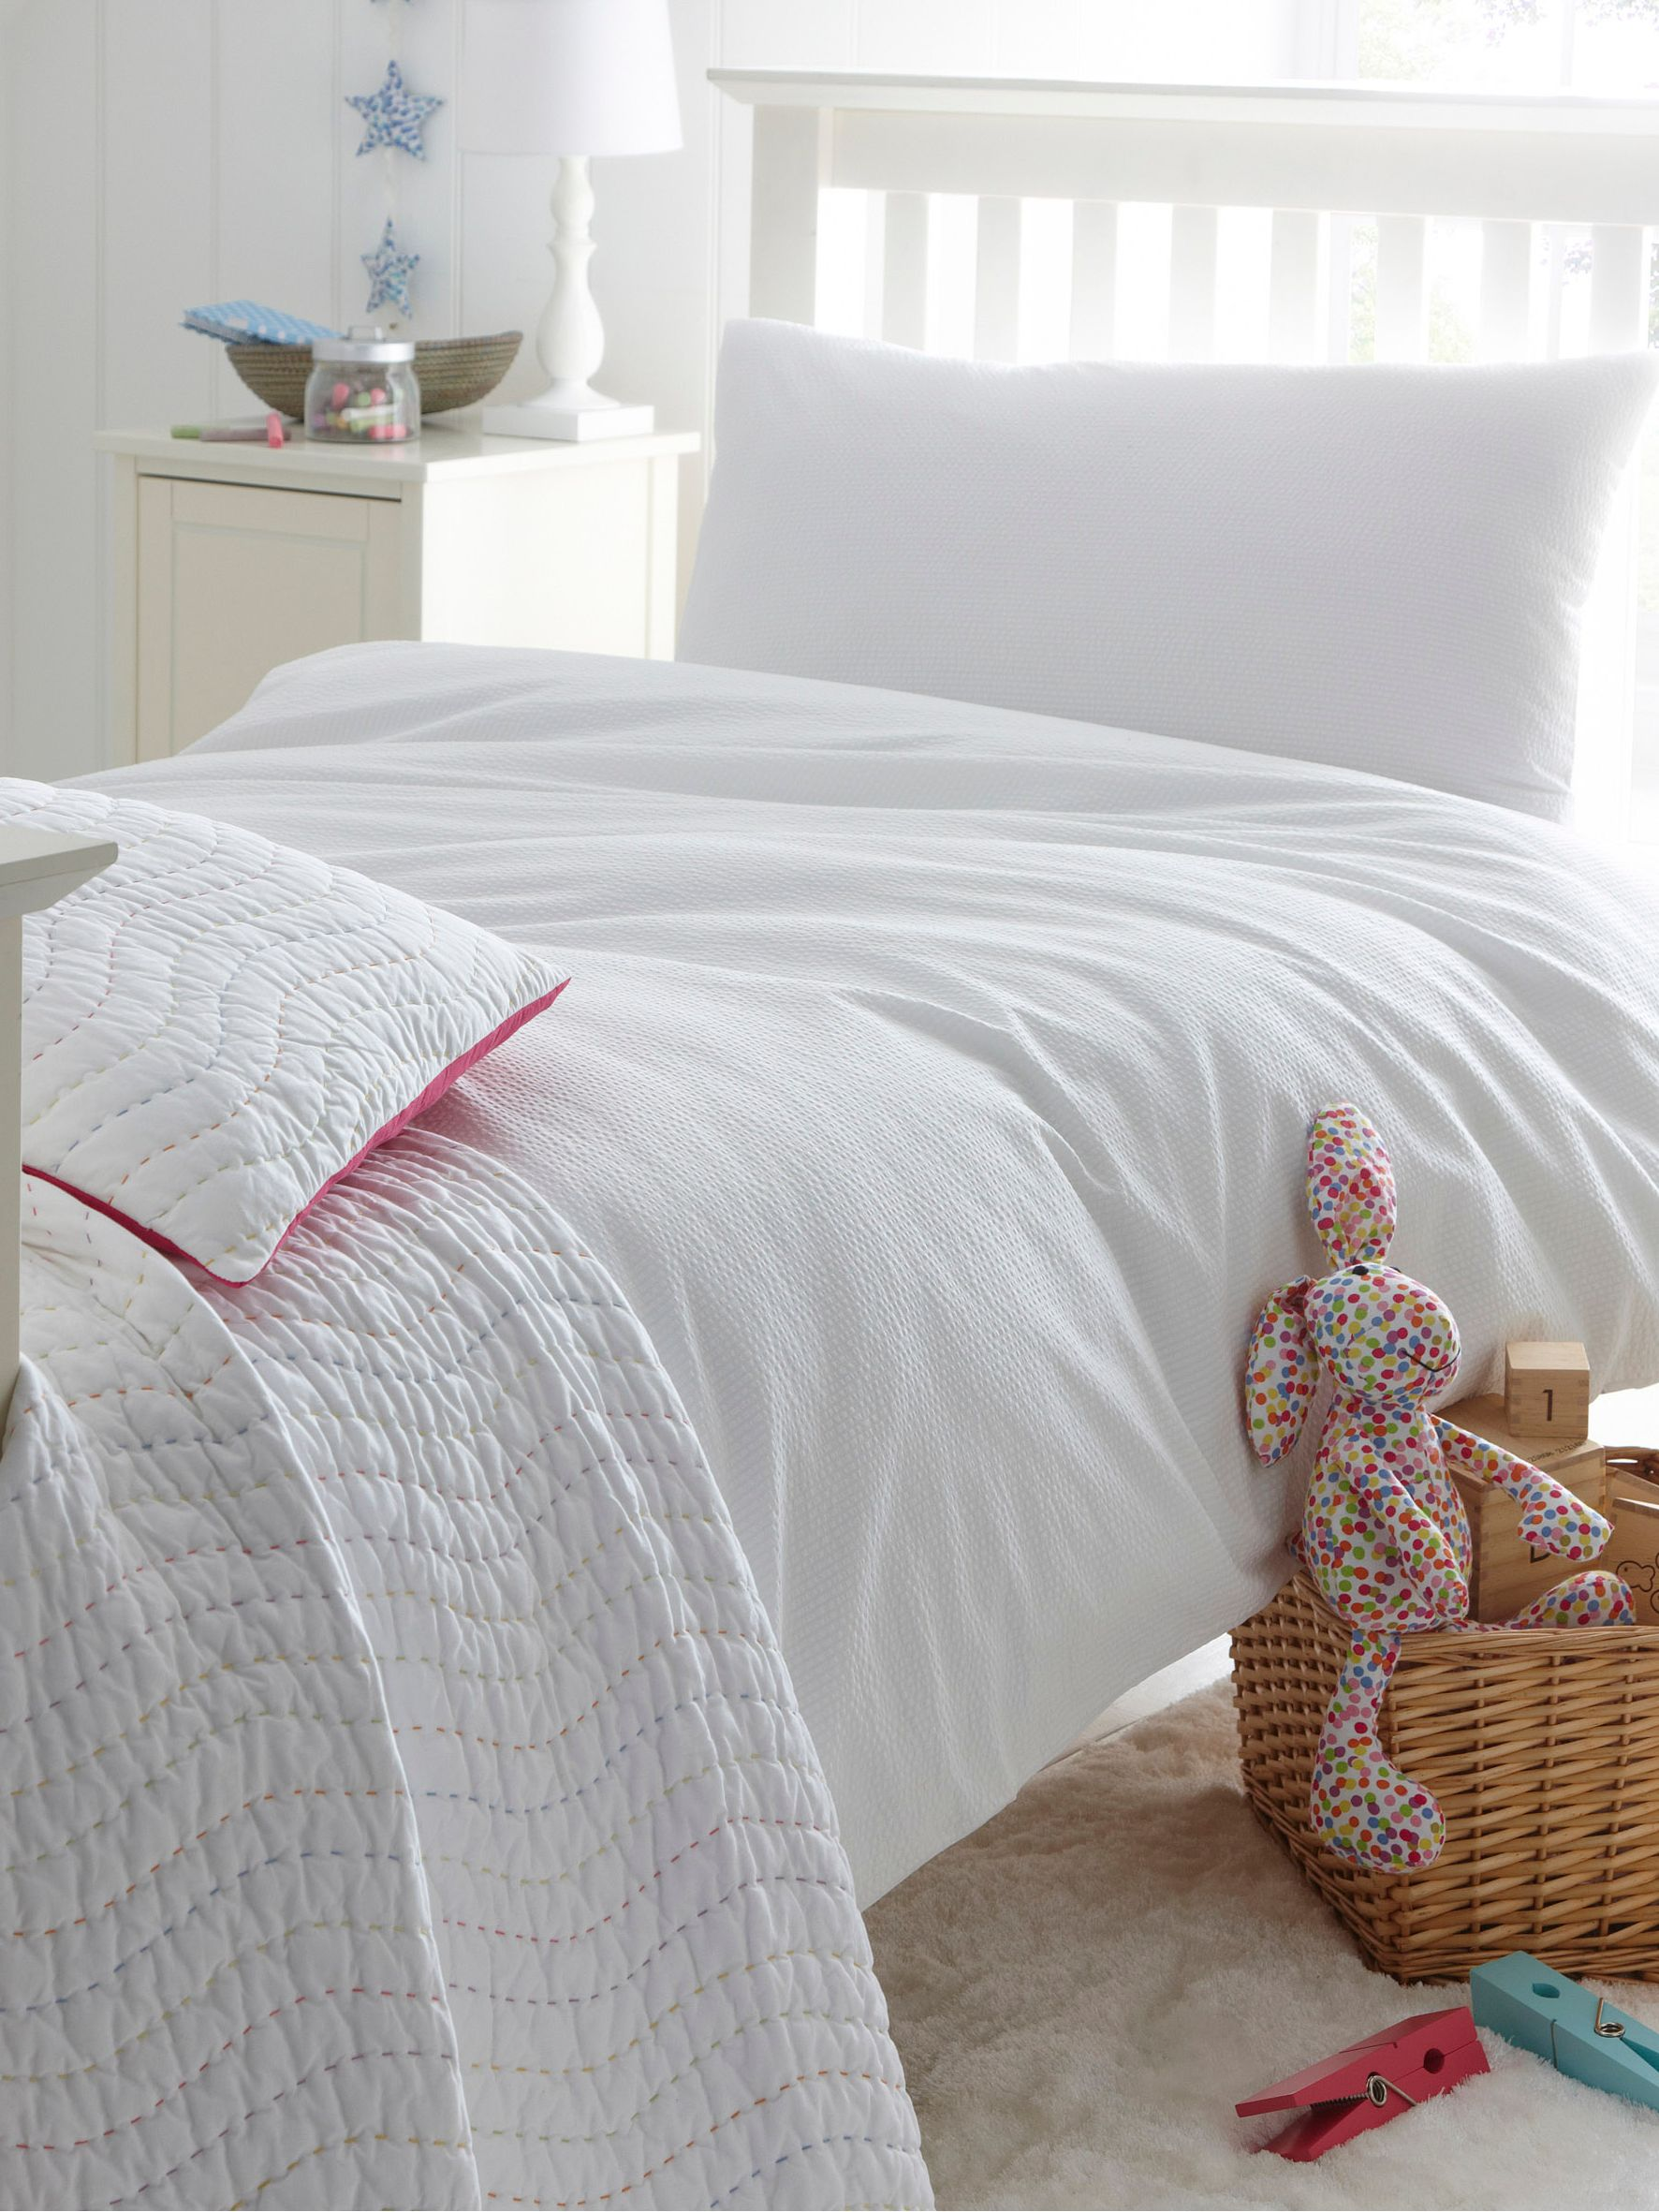 Seersucker double duvet cover